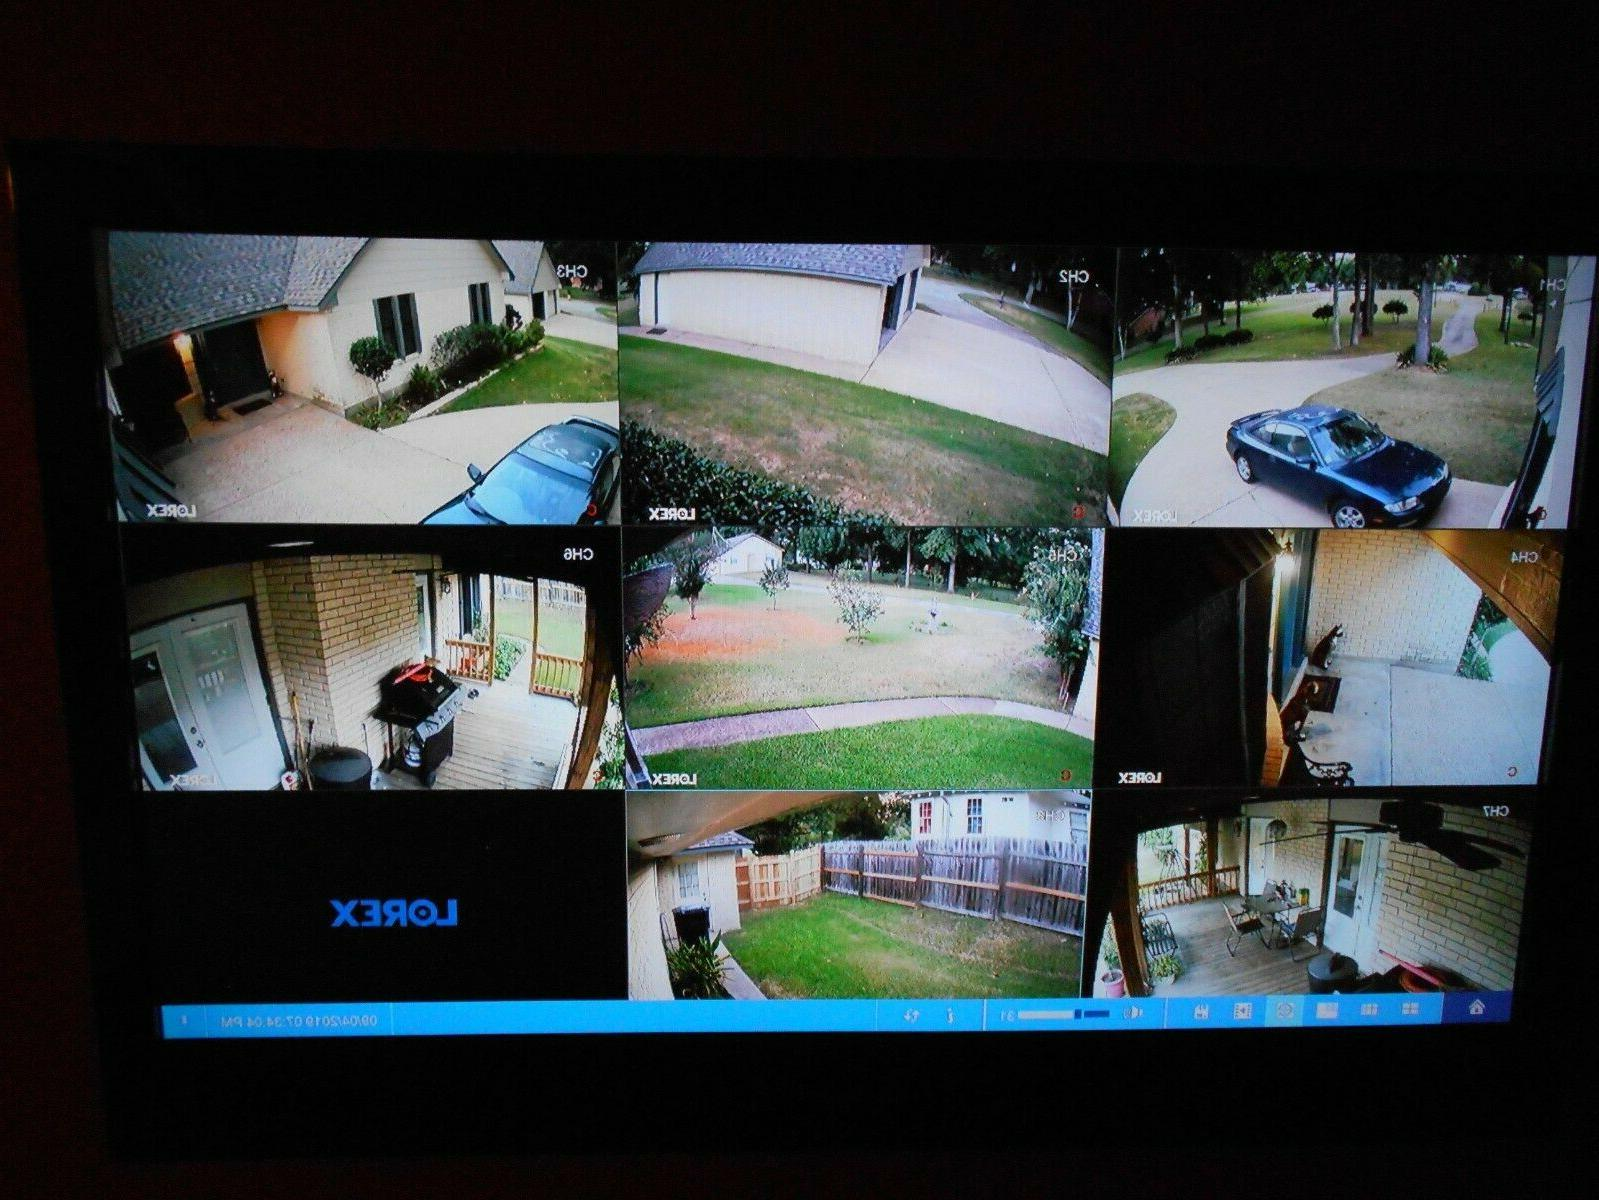 BRAND NEW LOREX WIRED CAMERA 1080p CHANNELS CAMERAS